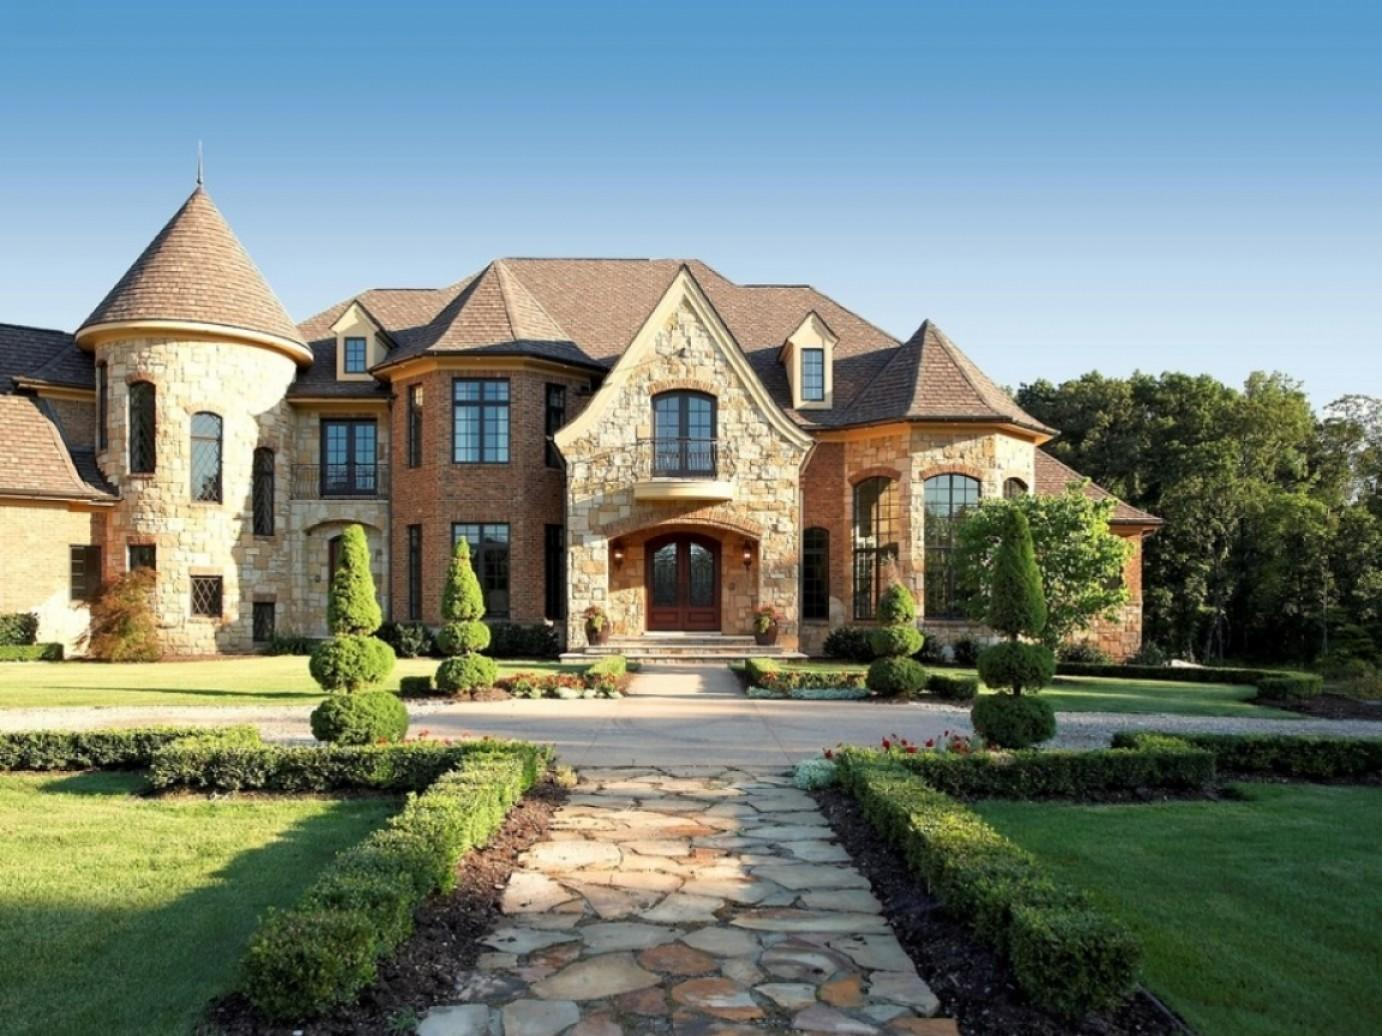 French Country Exterior House Colors Design